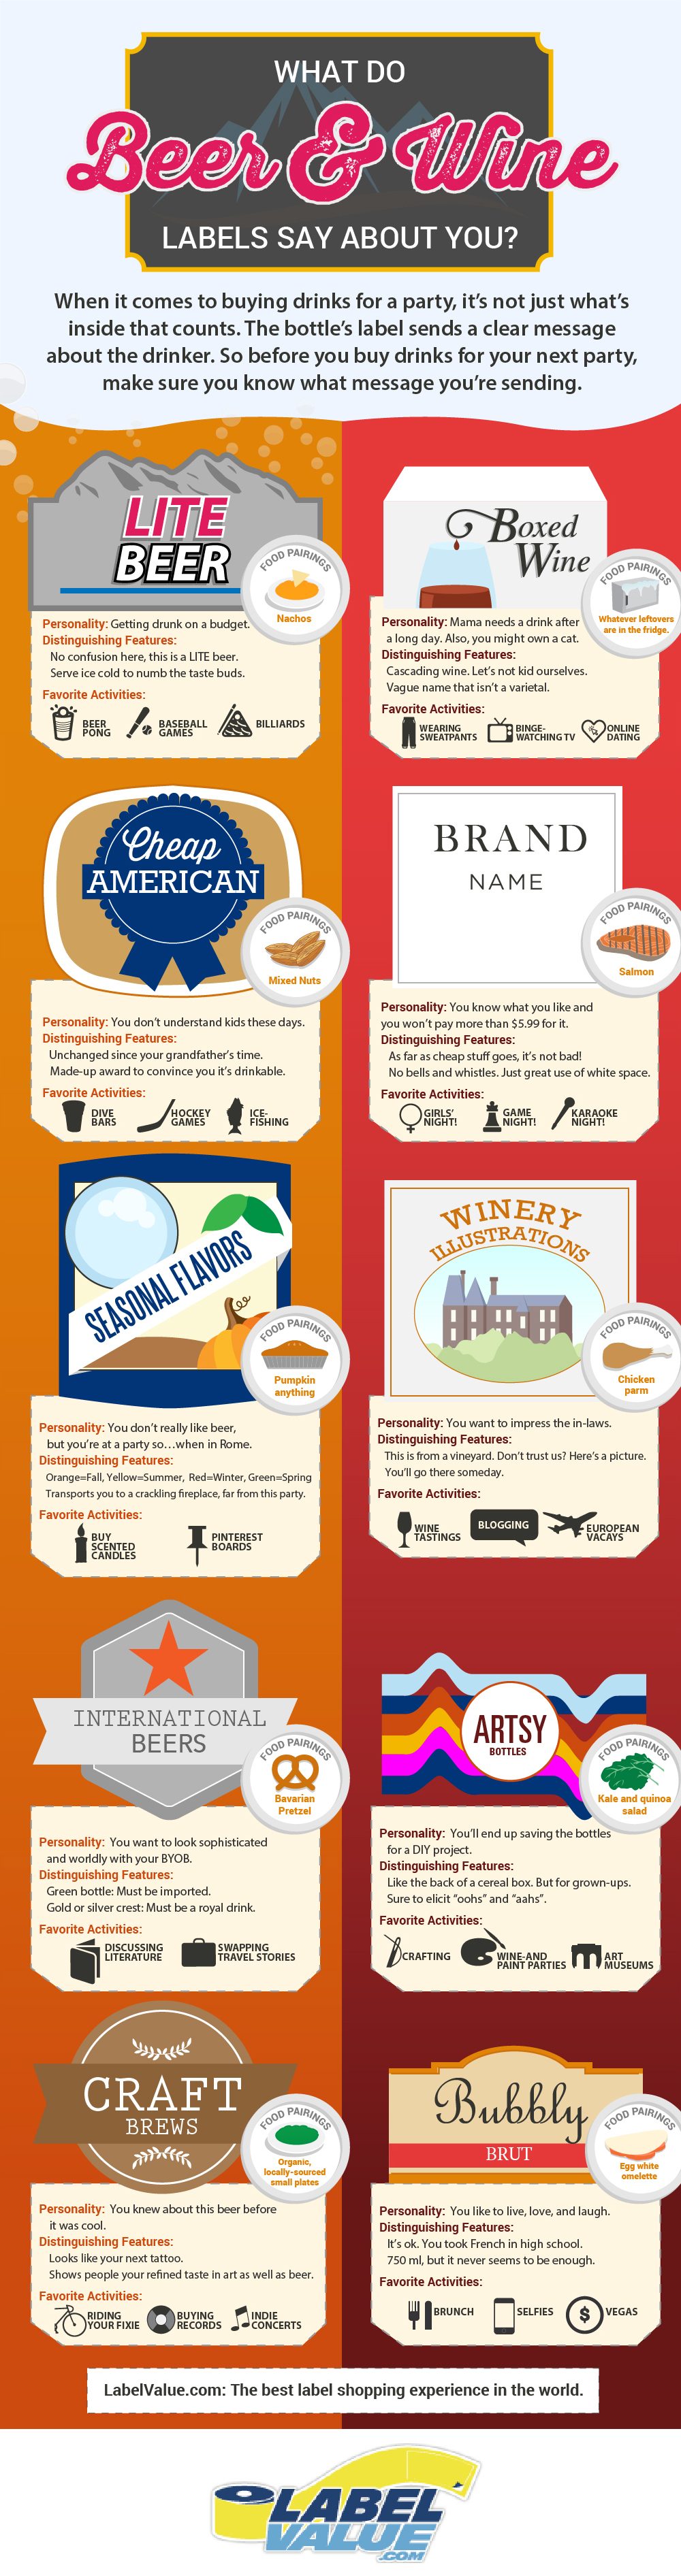 What Do Beer and Wine Labels Say About You?